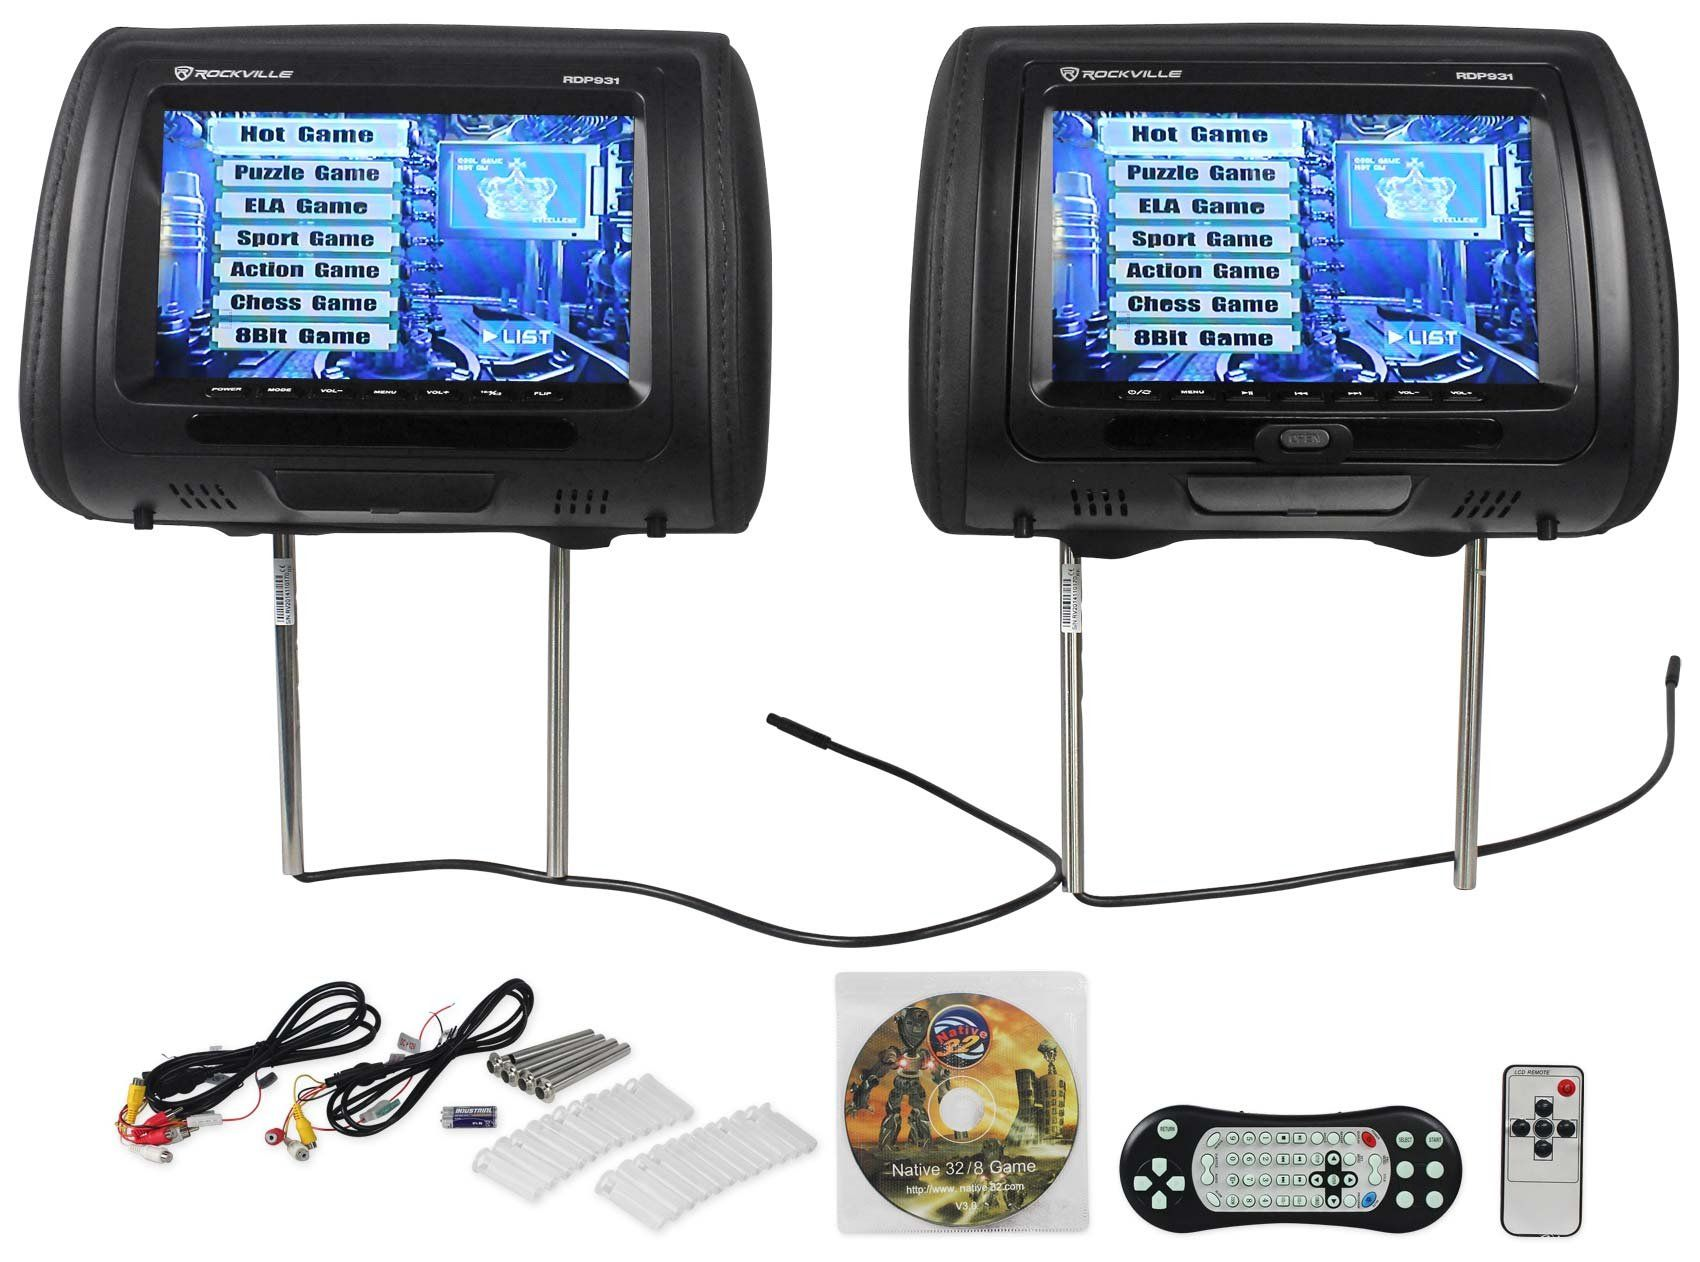 "Rockville Rdp931 Bk New 9"" Black Car Dvd Usb Hdmi Headrest Monitors  Schematic Wiring Diagram Rockville Monitor Wiring Diagram"